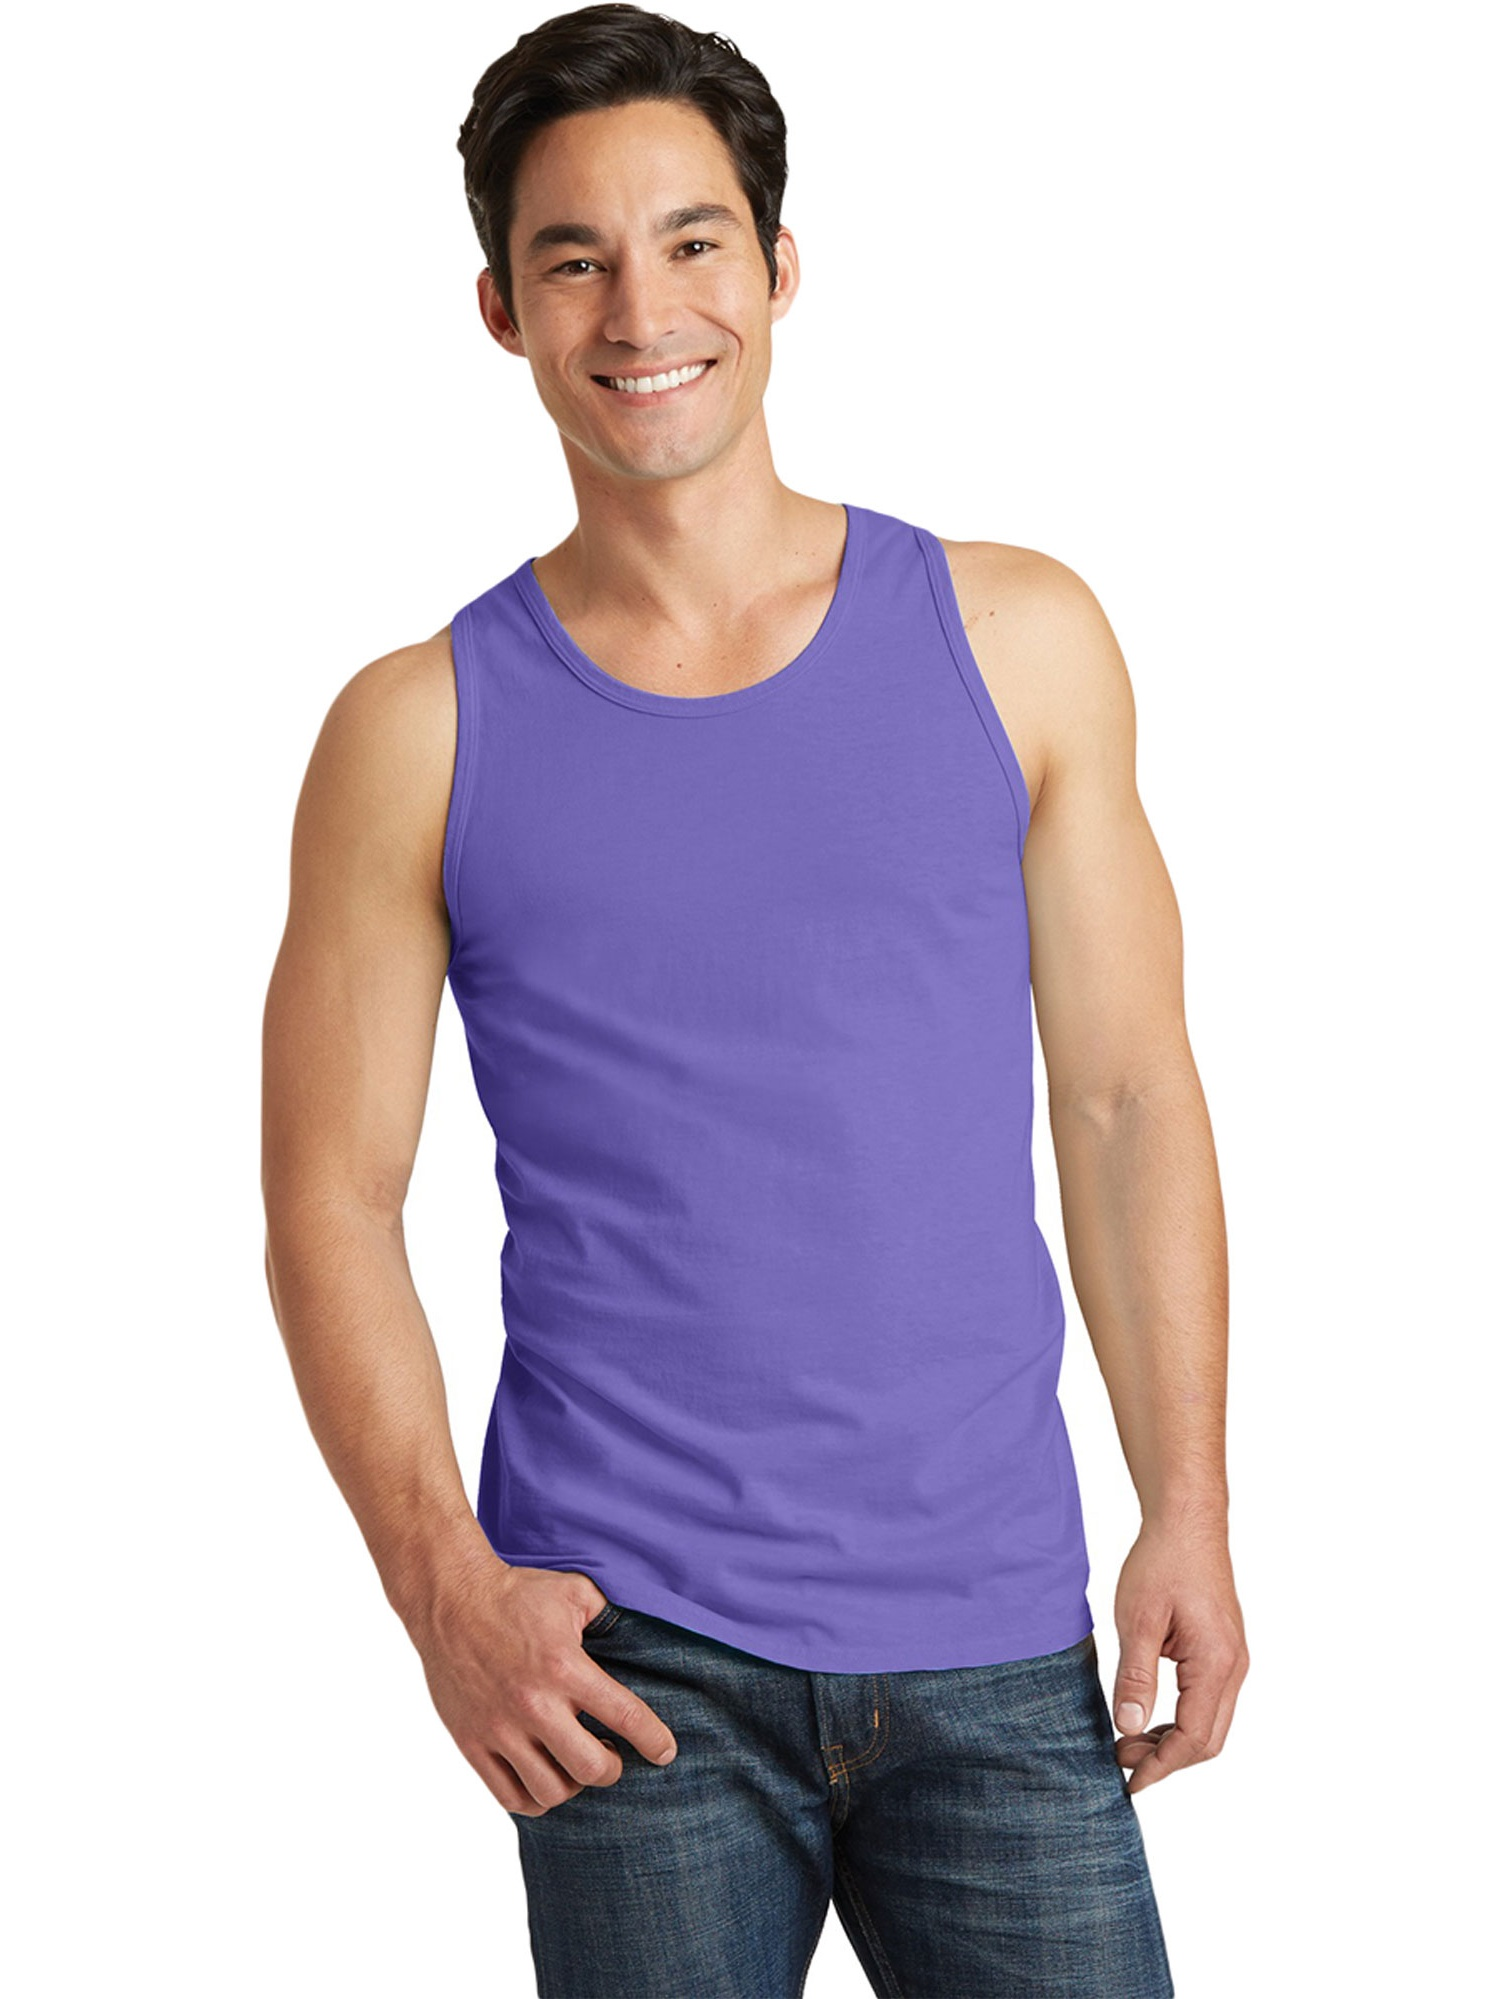 When Pigs Fly Adult Pigment Dye Tank Top